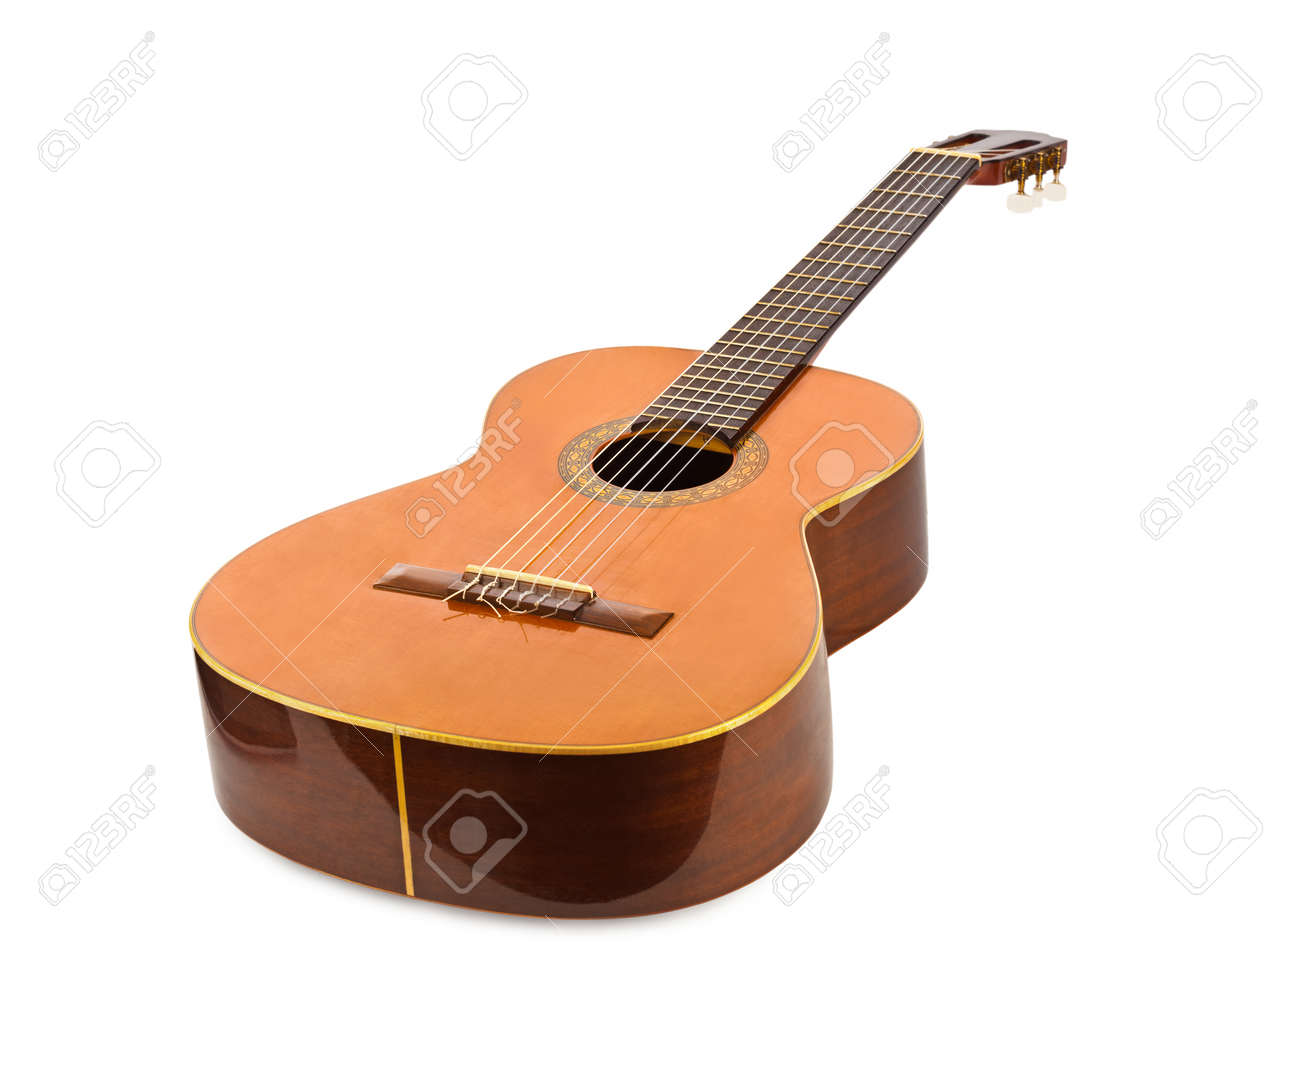 Classical Acoustic Guitar Isolated On White Background Stock Photo